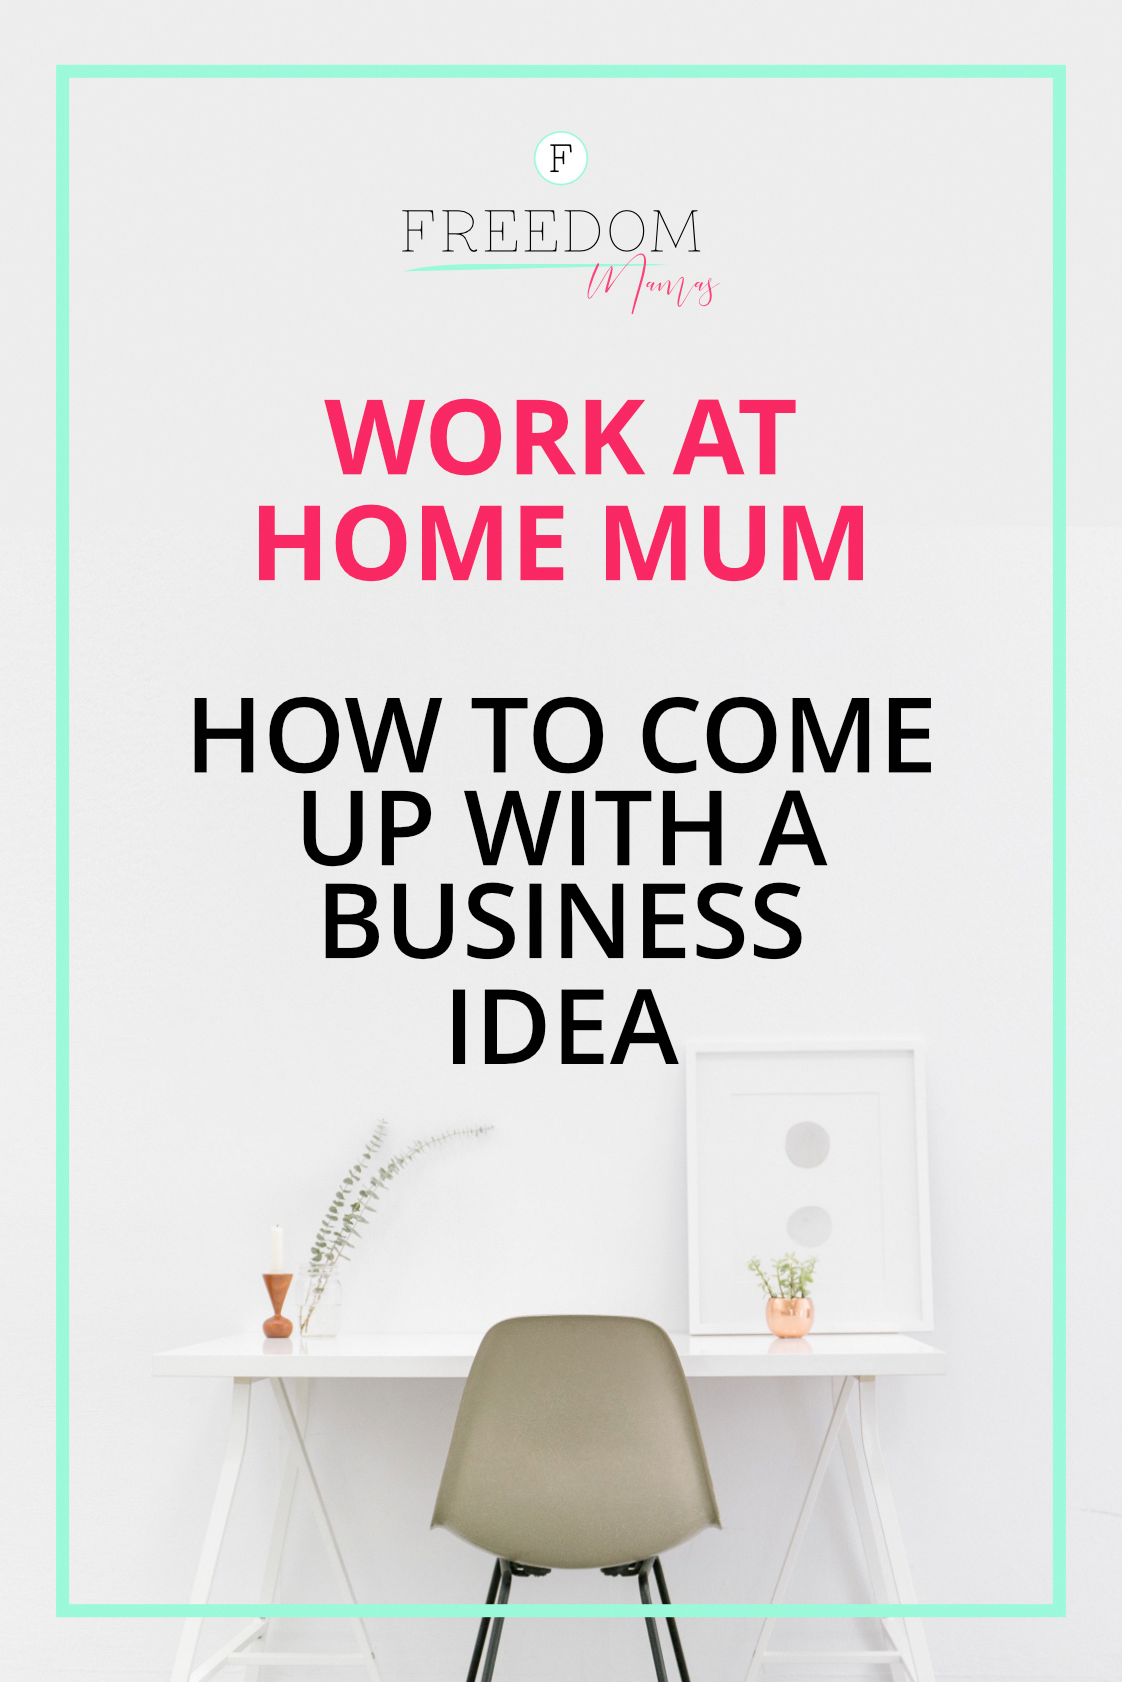 work at home mum, how to come up with a business idea that is right